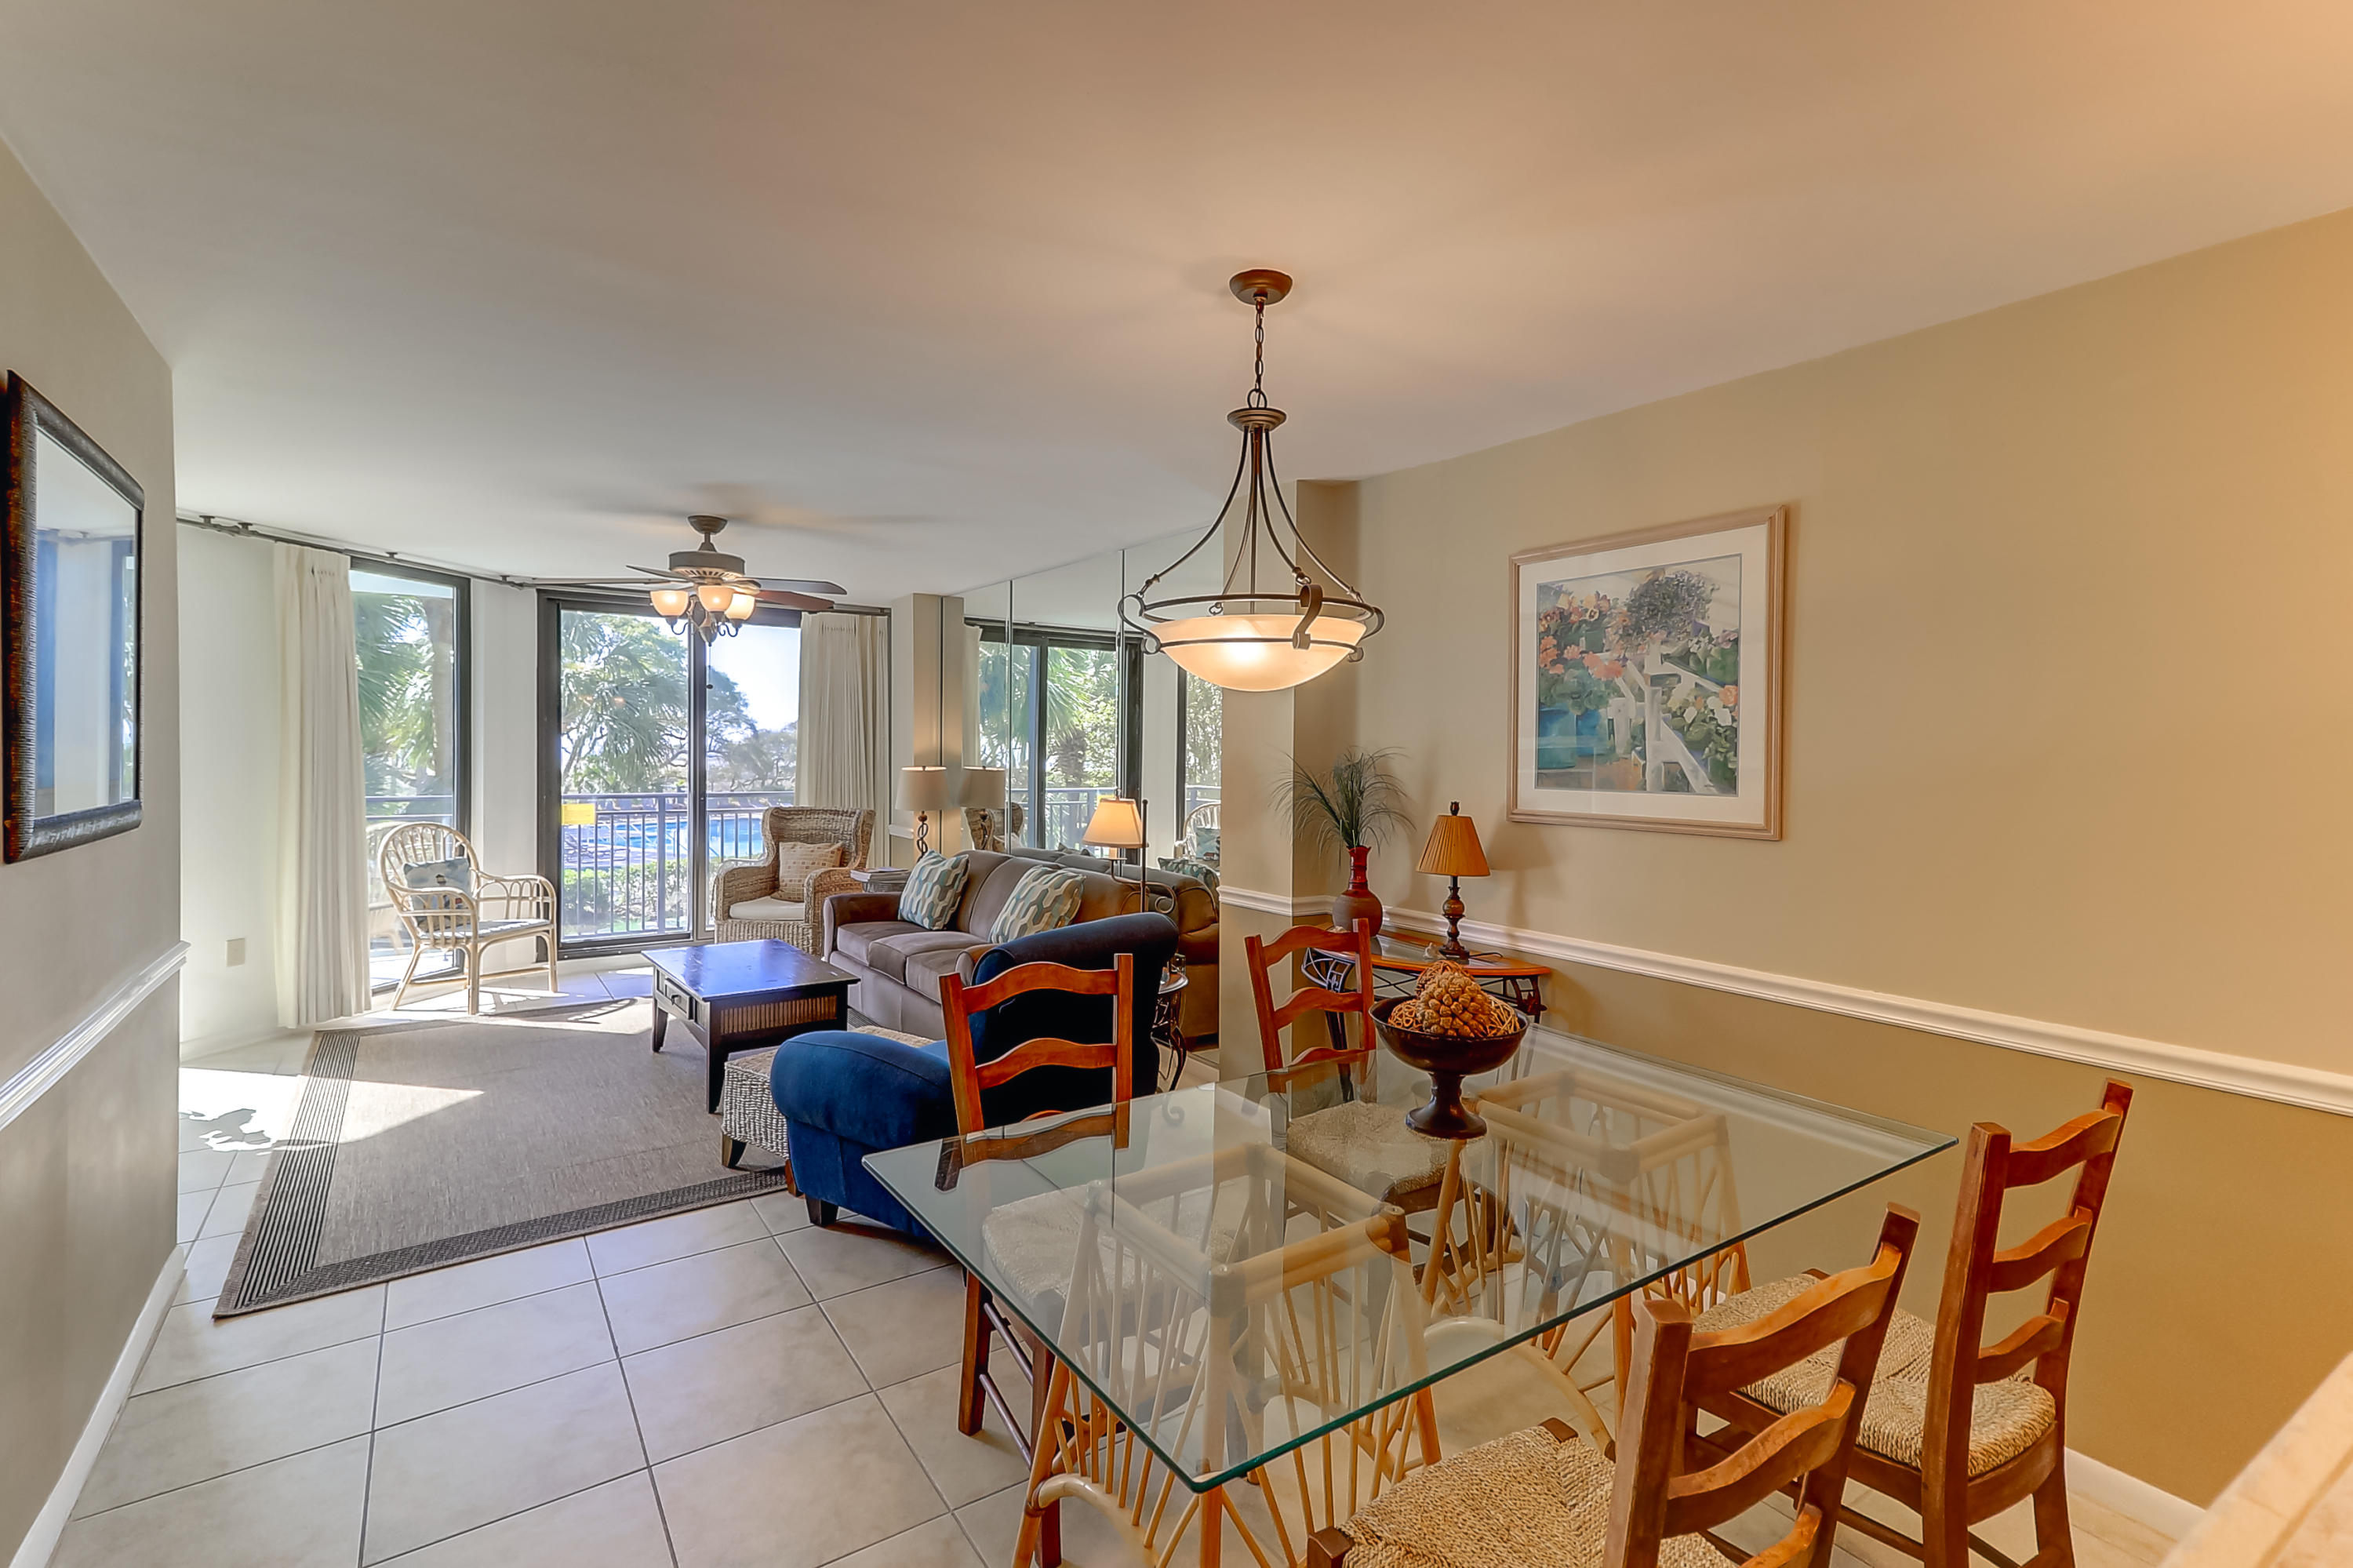 Wild Dunes Homes For Sale - 116-C Shipwatch, Isle of Palms, SC - 24